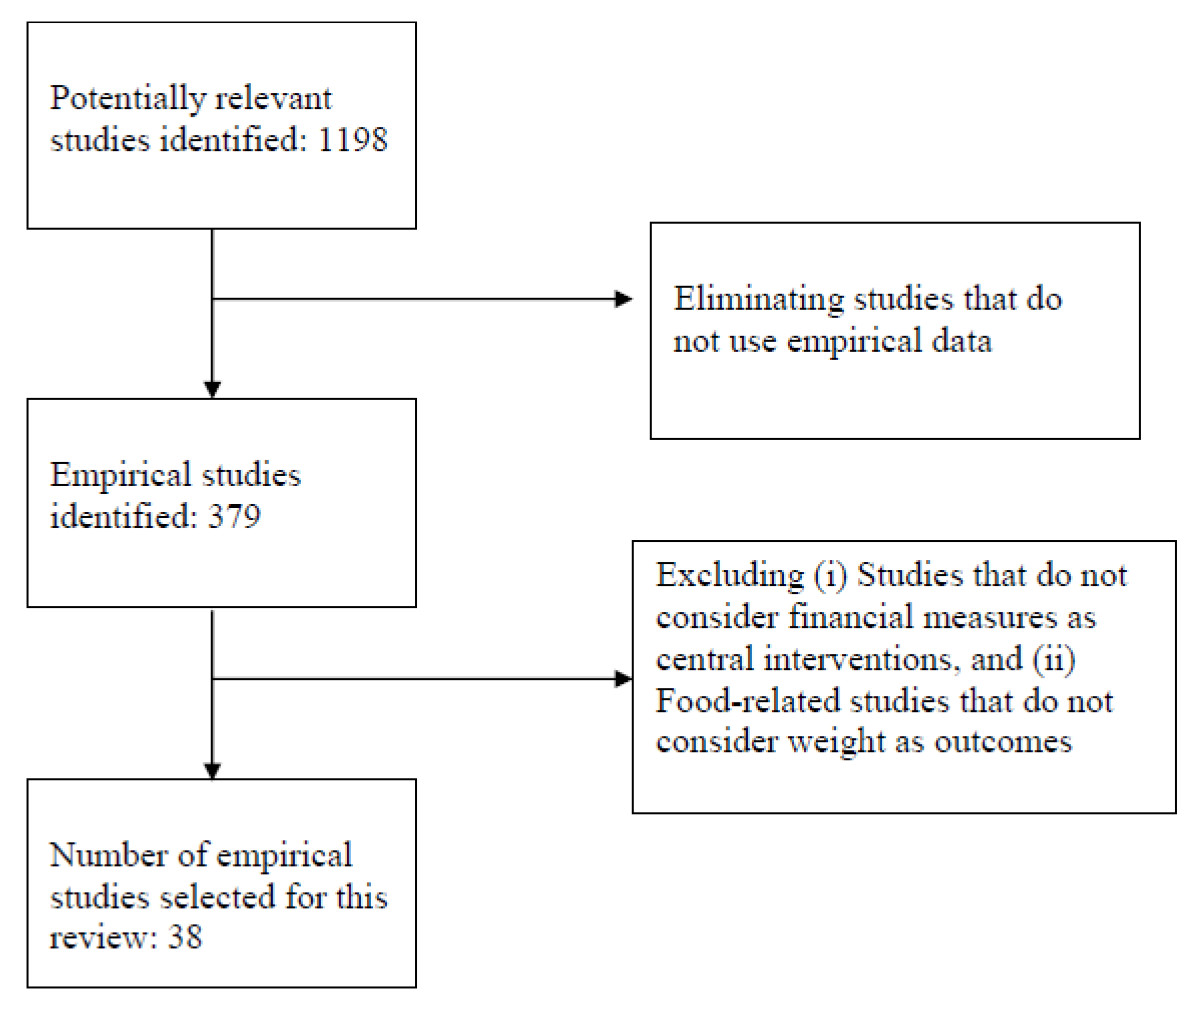 http://static-content.springer.com/image/art%3A10.1186%2F1479-5868-8-109/MediaObjects/12966_2011_Article_505_Fig1_HTML.jpg